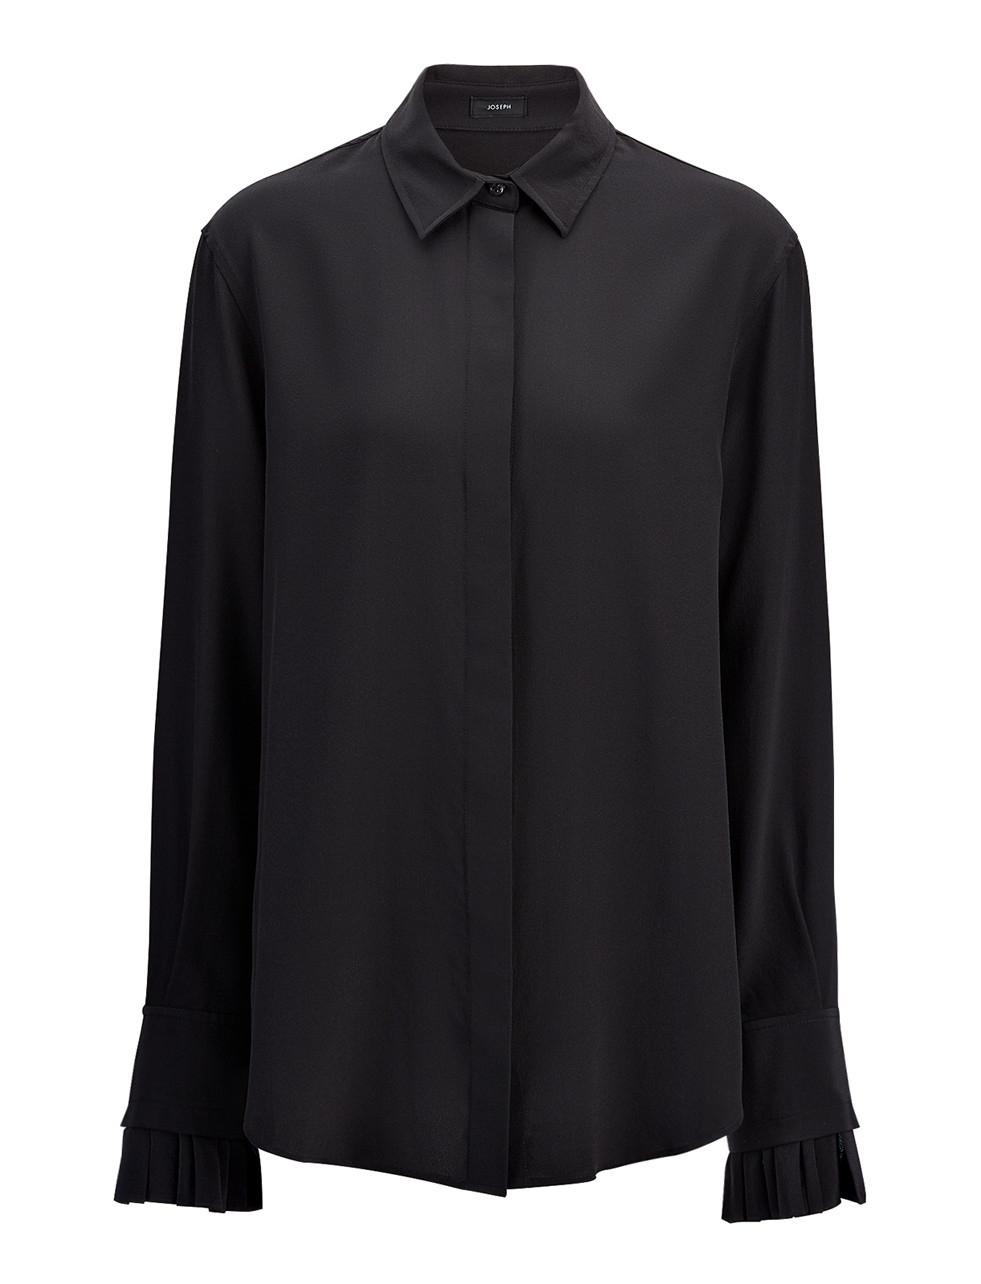 Crepe De Chine Riko Blouse In Black - neckline: shirt collar/peter pan/zip with opening; pattern: plain; style: shirt; predominant colour: black; occasions: evening; length: standard; fibres: silk - 100%; fit: body skimming; sleeve length: long sleeve; sleeve style: standard; texture group: crepes; pattern type: fabric; season: s/s 2016